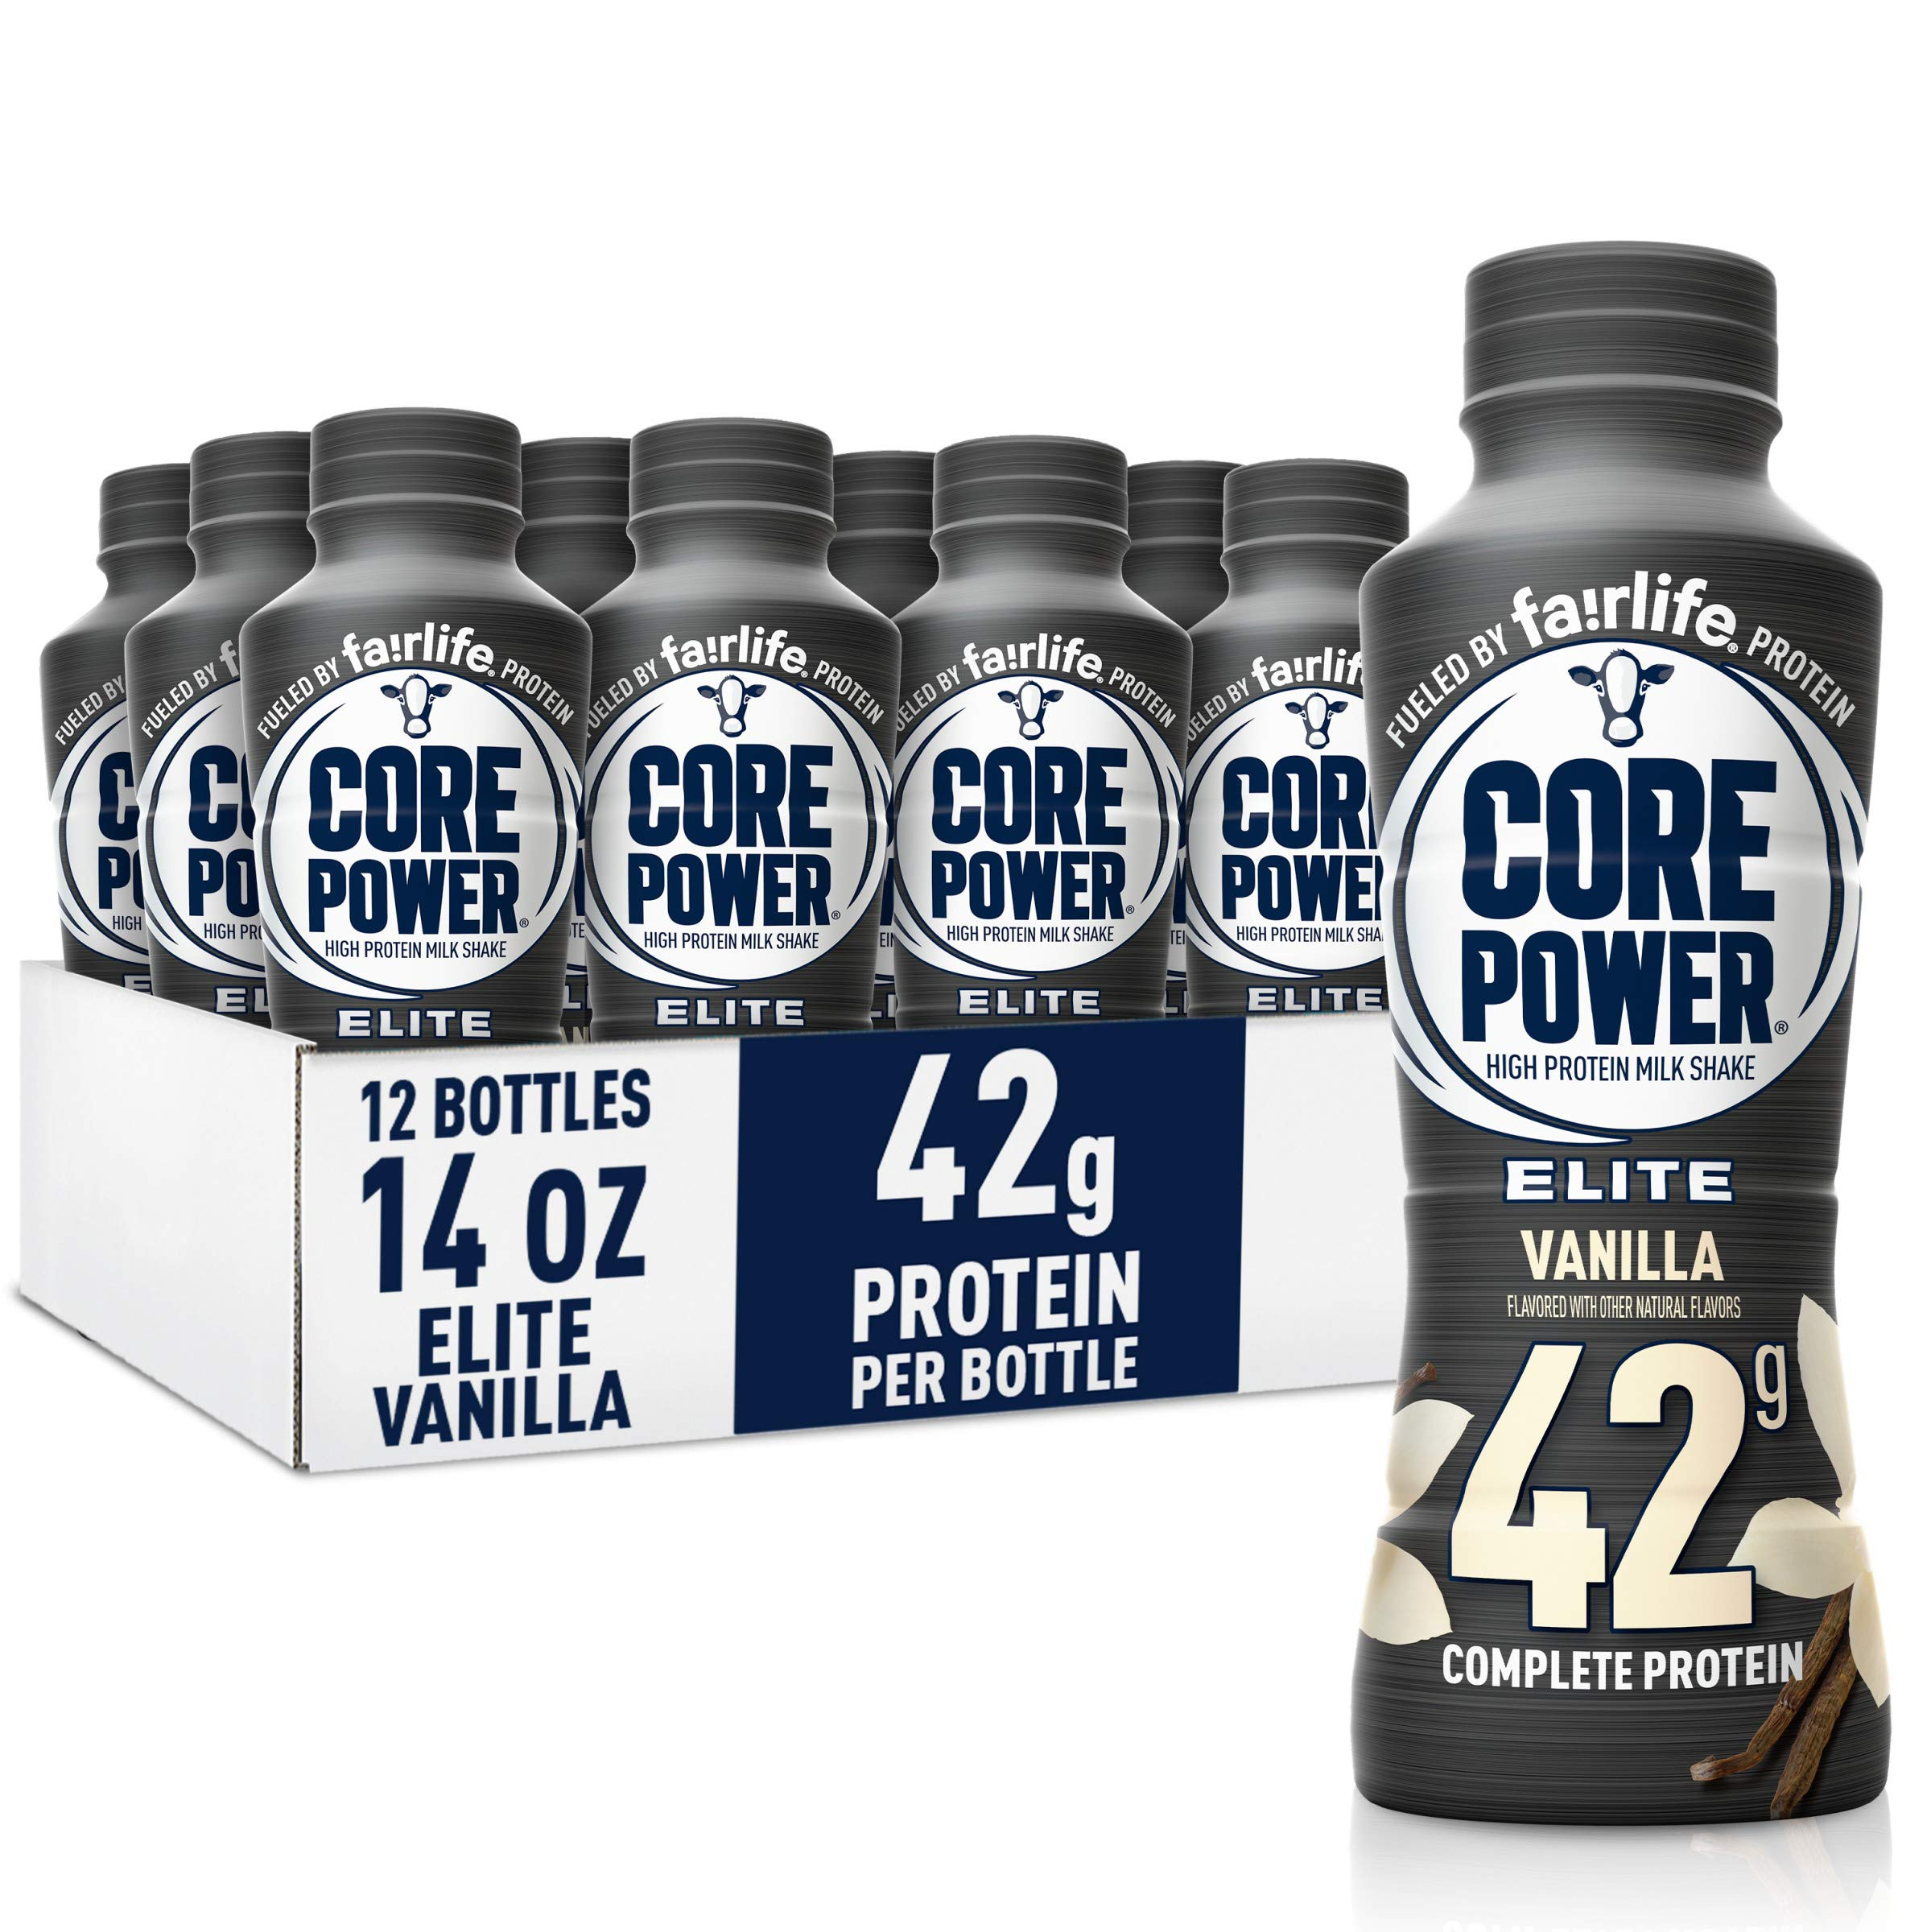 Fairlife Core Power Elite High Protein Shake (42g), Vanilla, Ready To Drink for Workout Recovery, 14 Fl Oz Bottles (12 Pack)